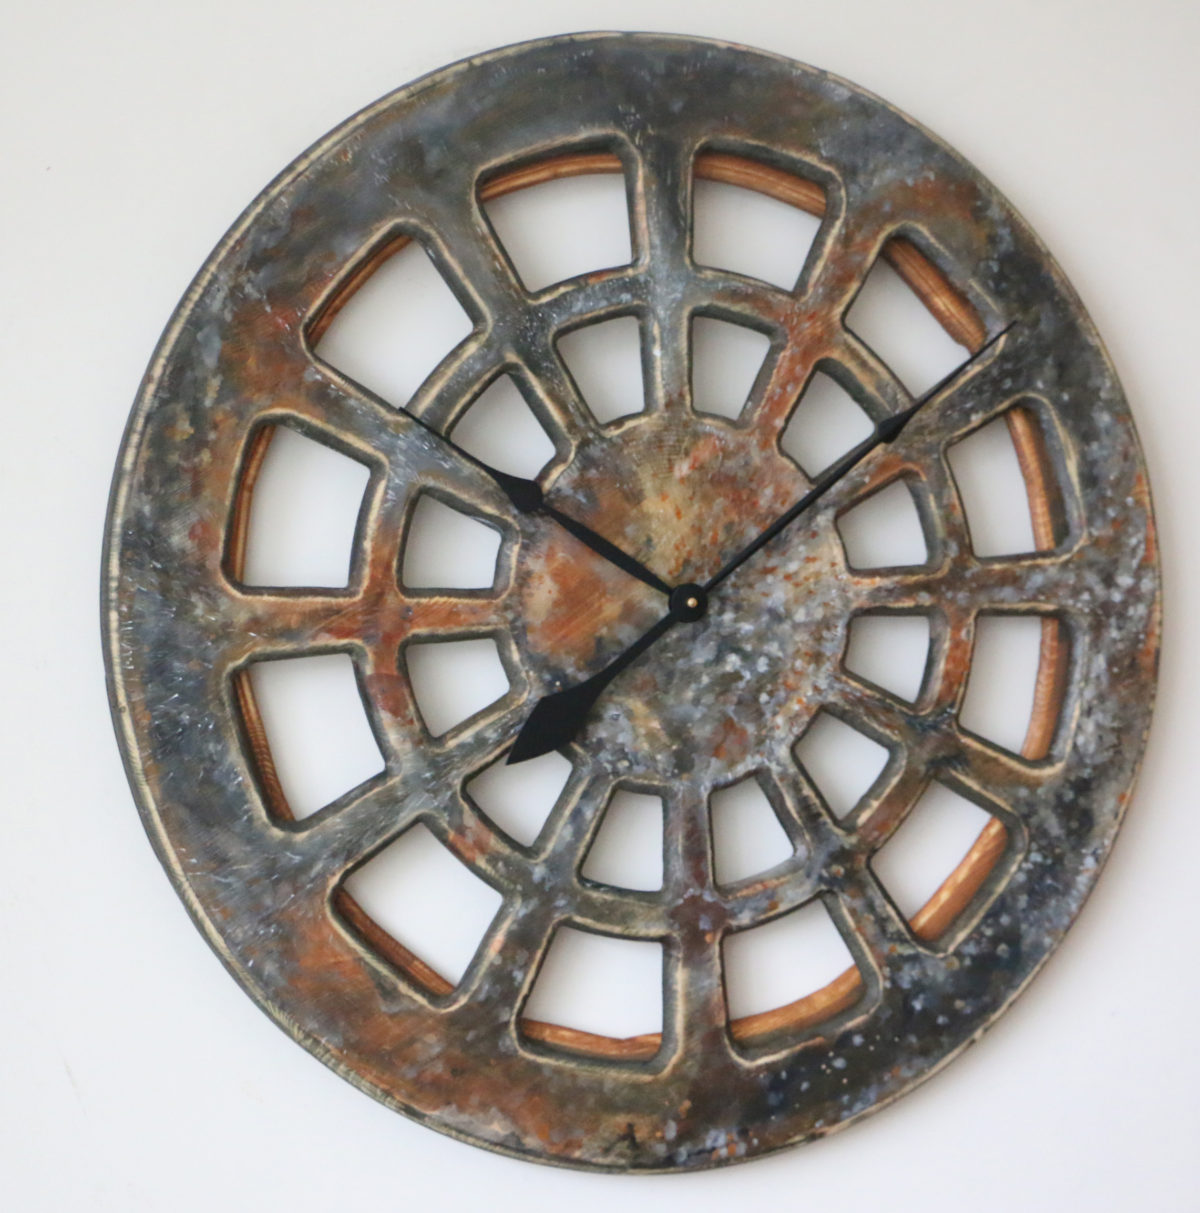 Massive Handmade Wall Clocks New Design Trends